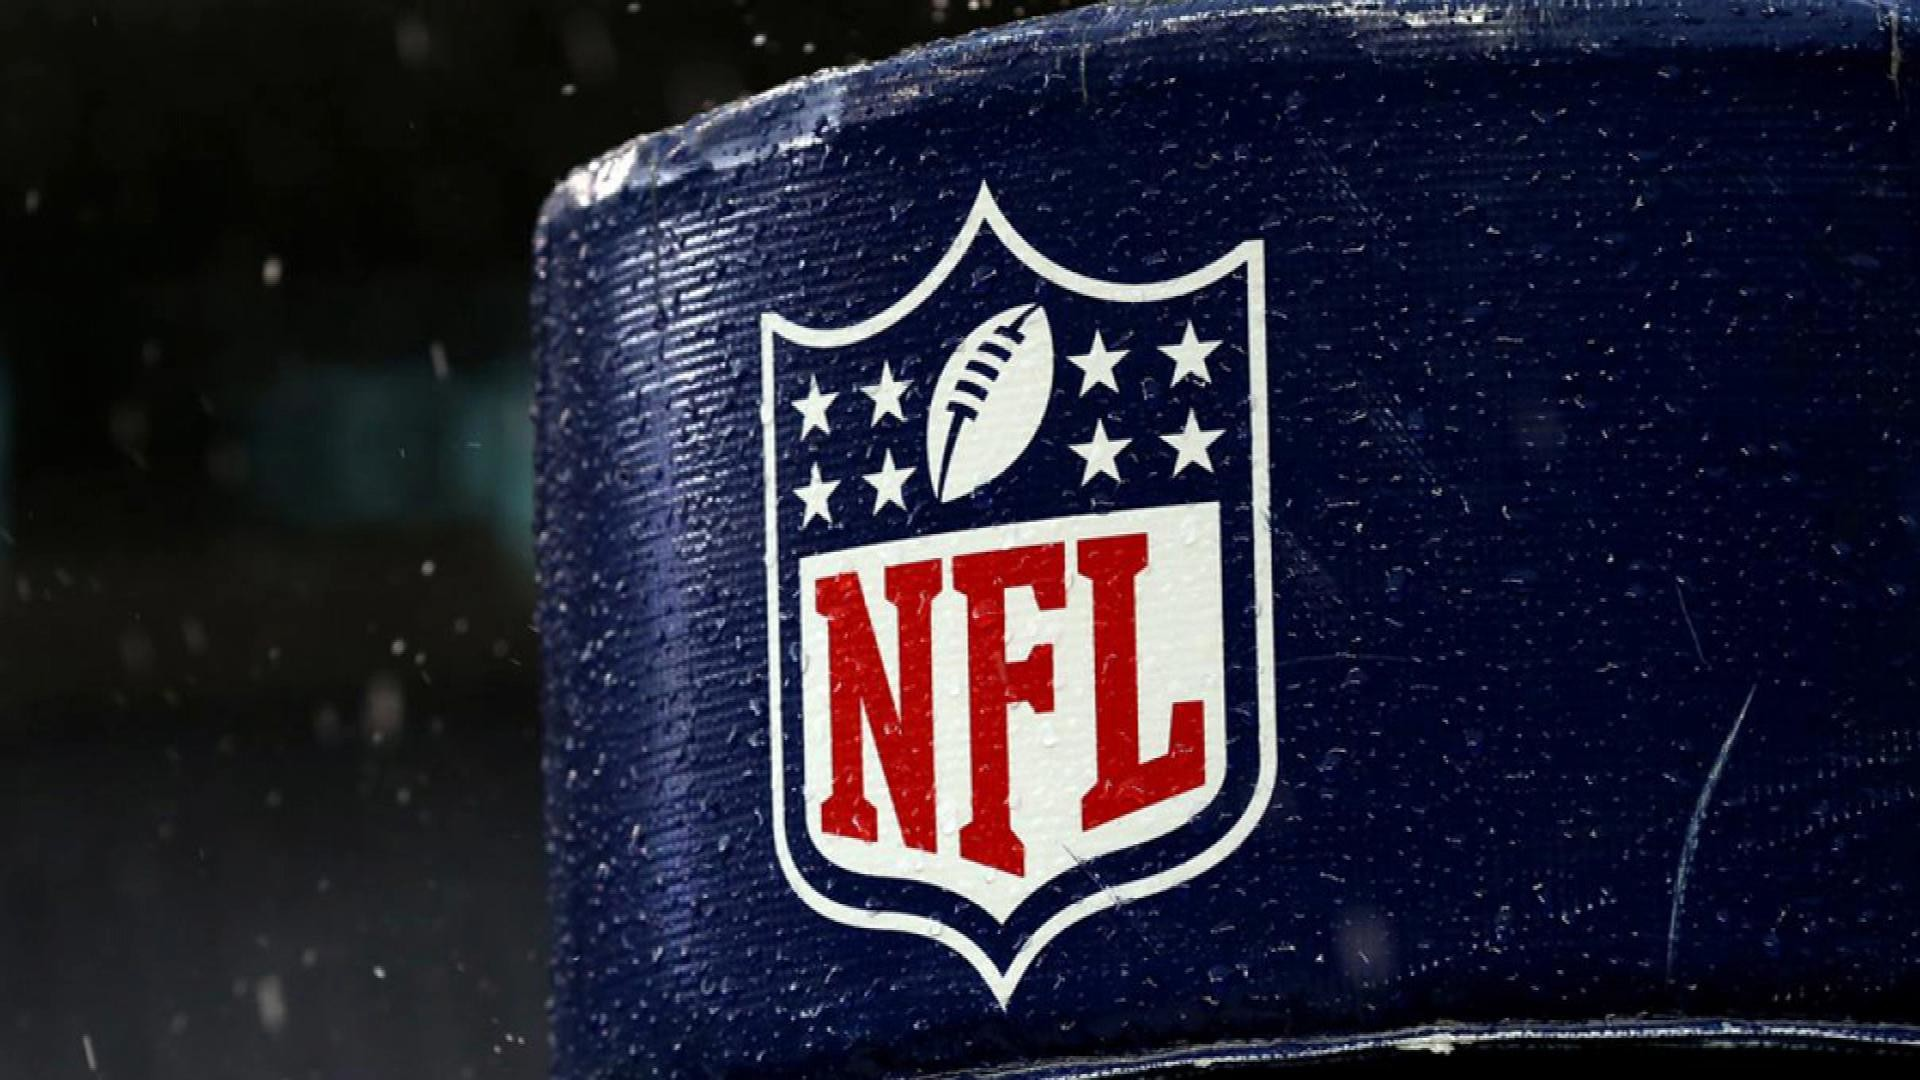 NFL salary cap is rising, showing the league is still making money